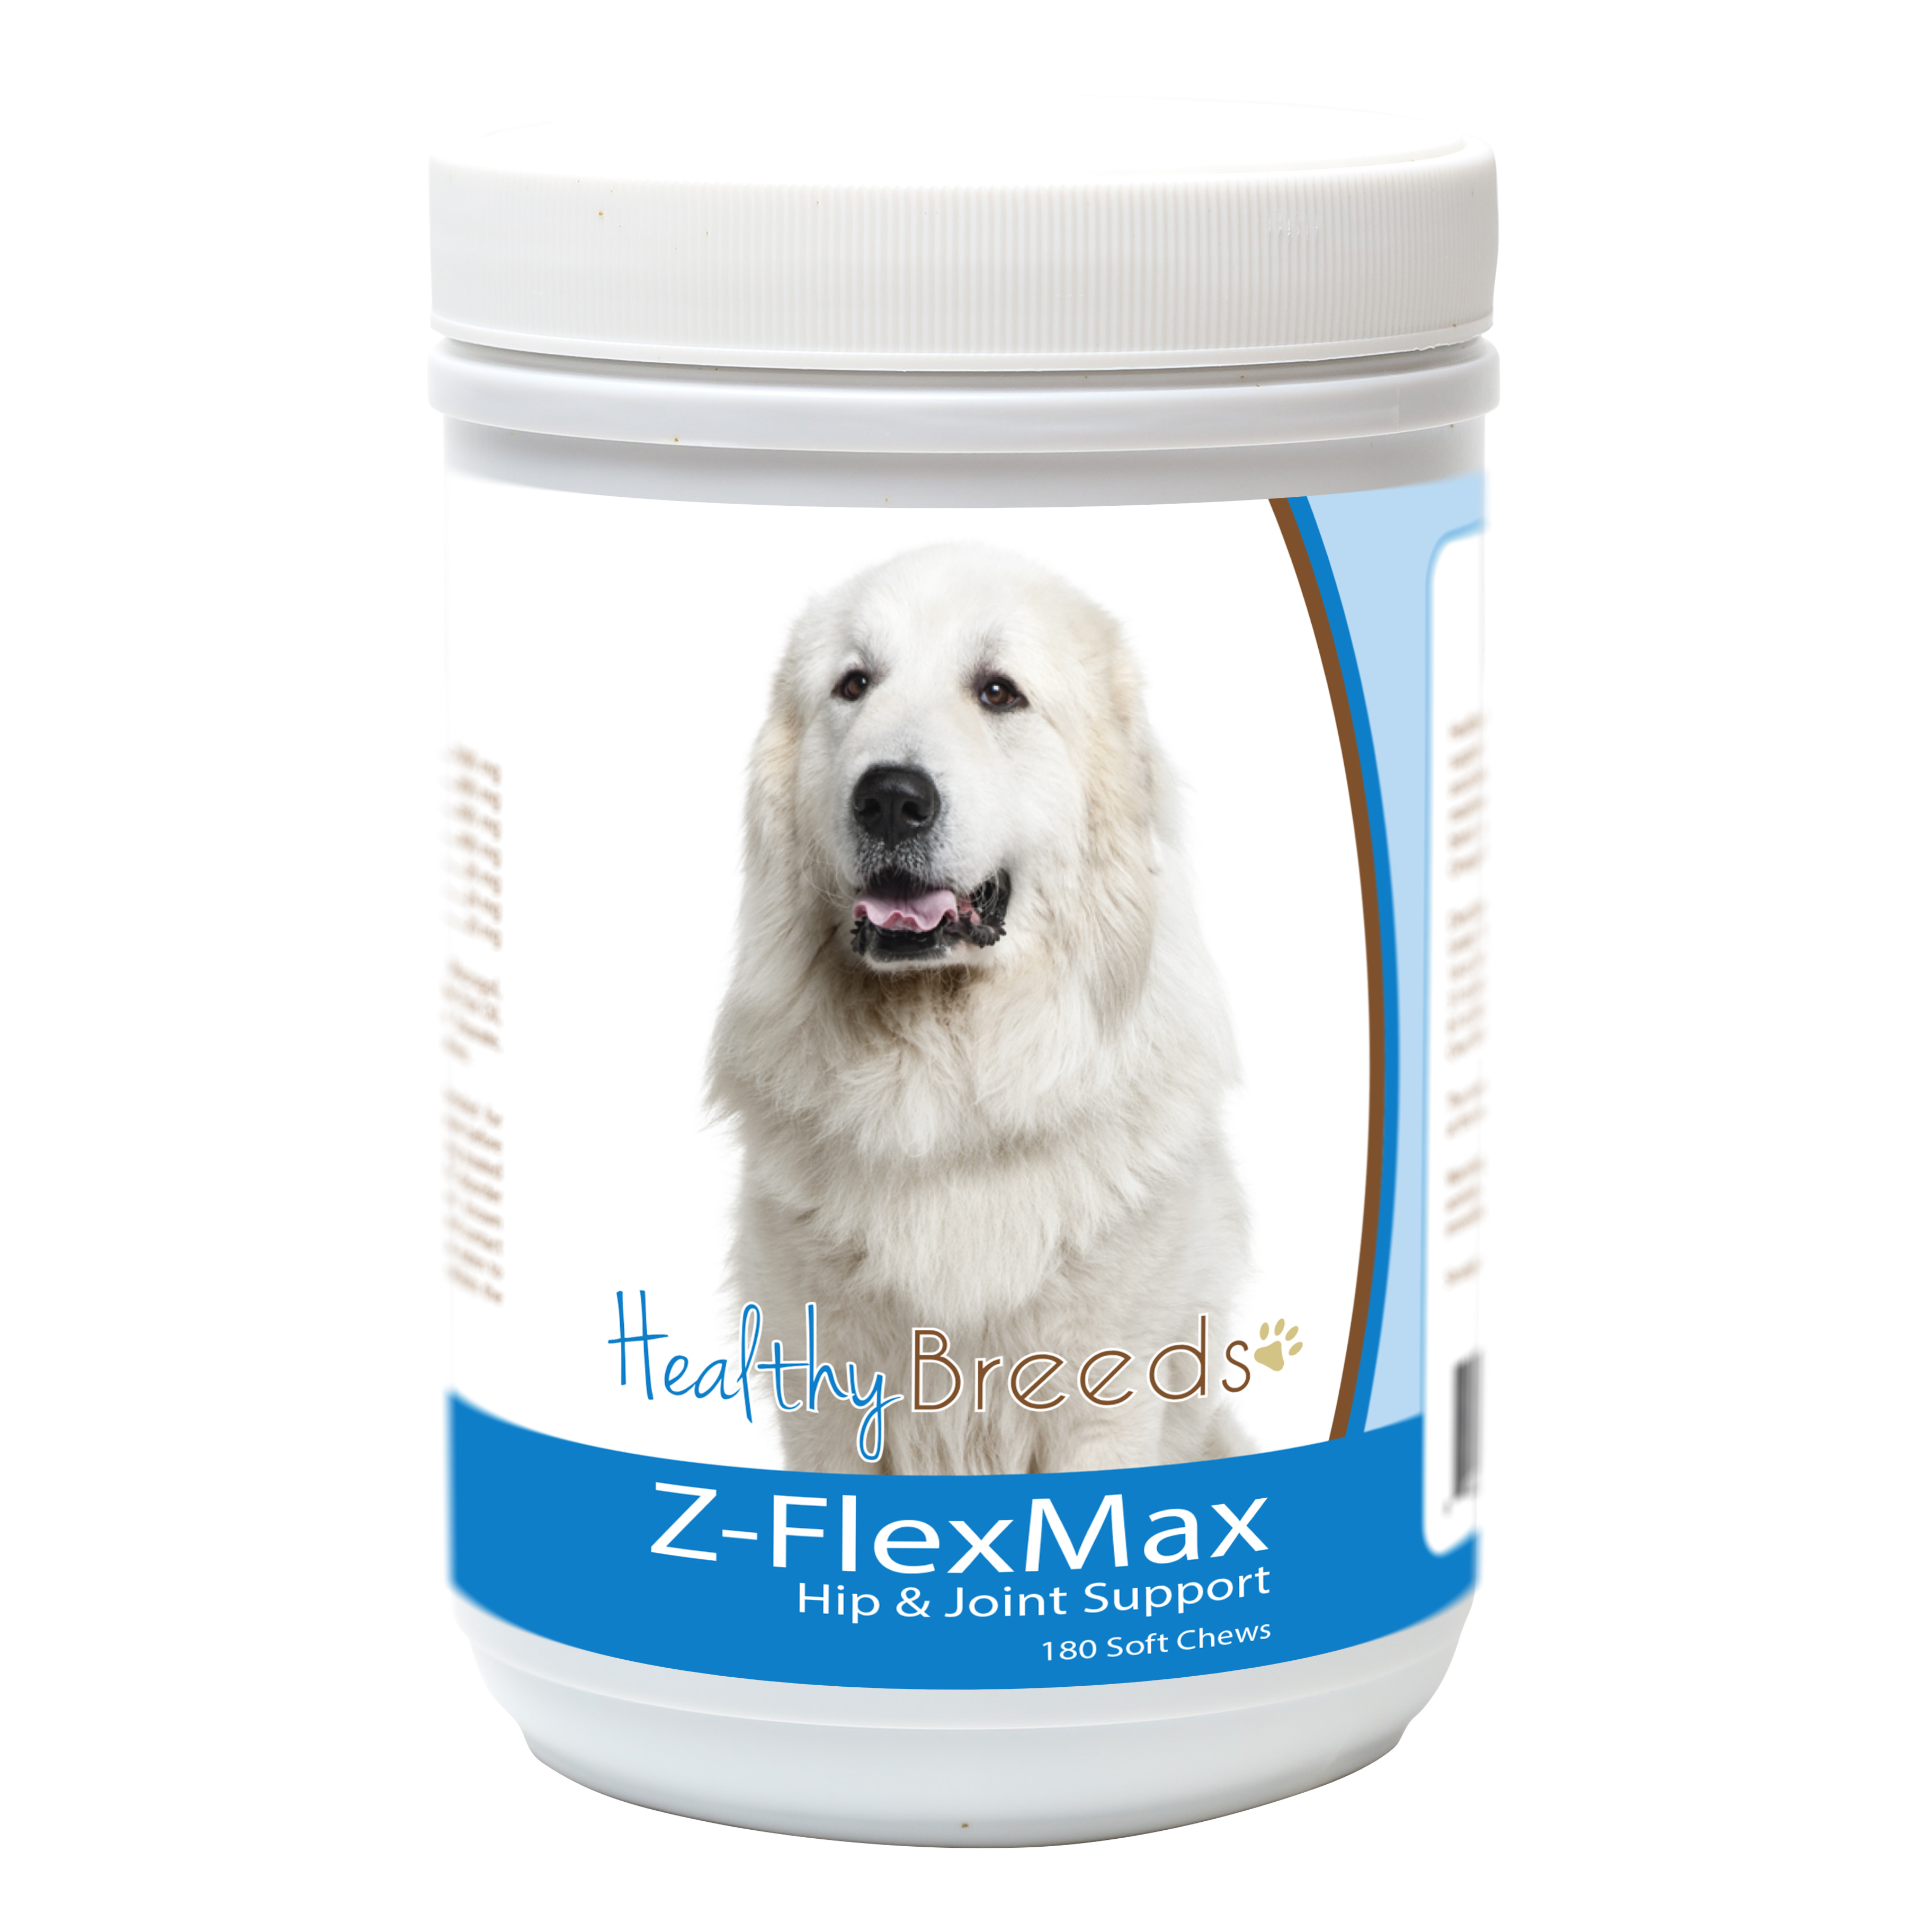 Healthy Breeds Great Pyrenees Z-Flex Max Dog Hip and Joint Support 180 Count